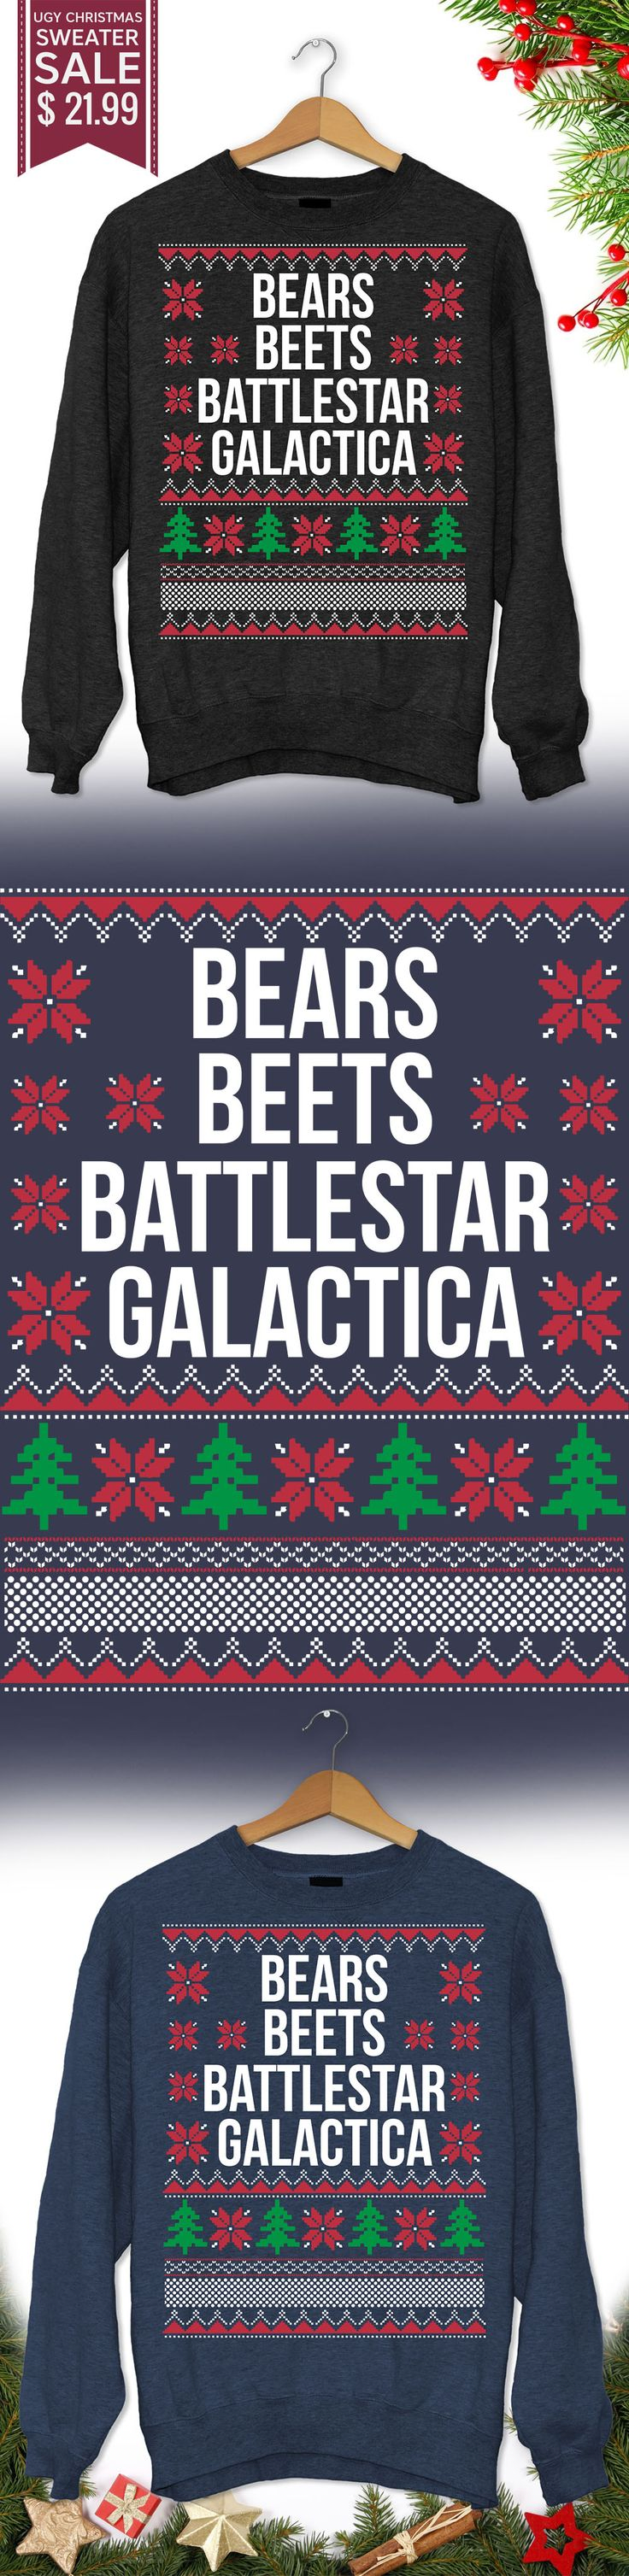 Bears Beets Battlestar Galactica - Get this limited edition ugly Christmas Sweater just in time for the holidays! Buy 2 or more, save on shipping!